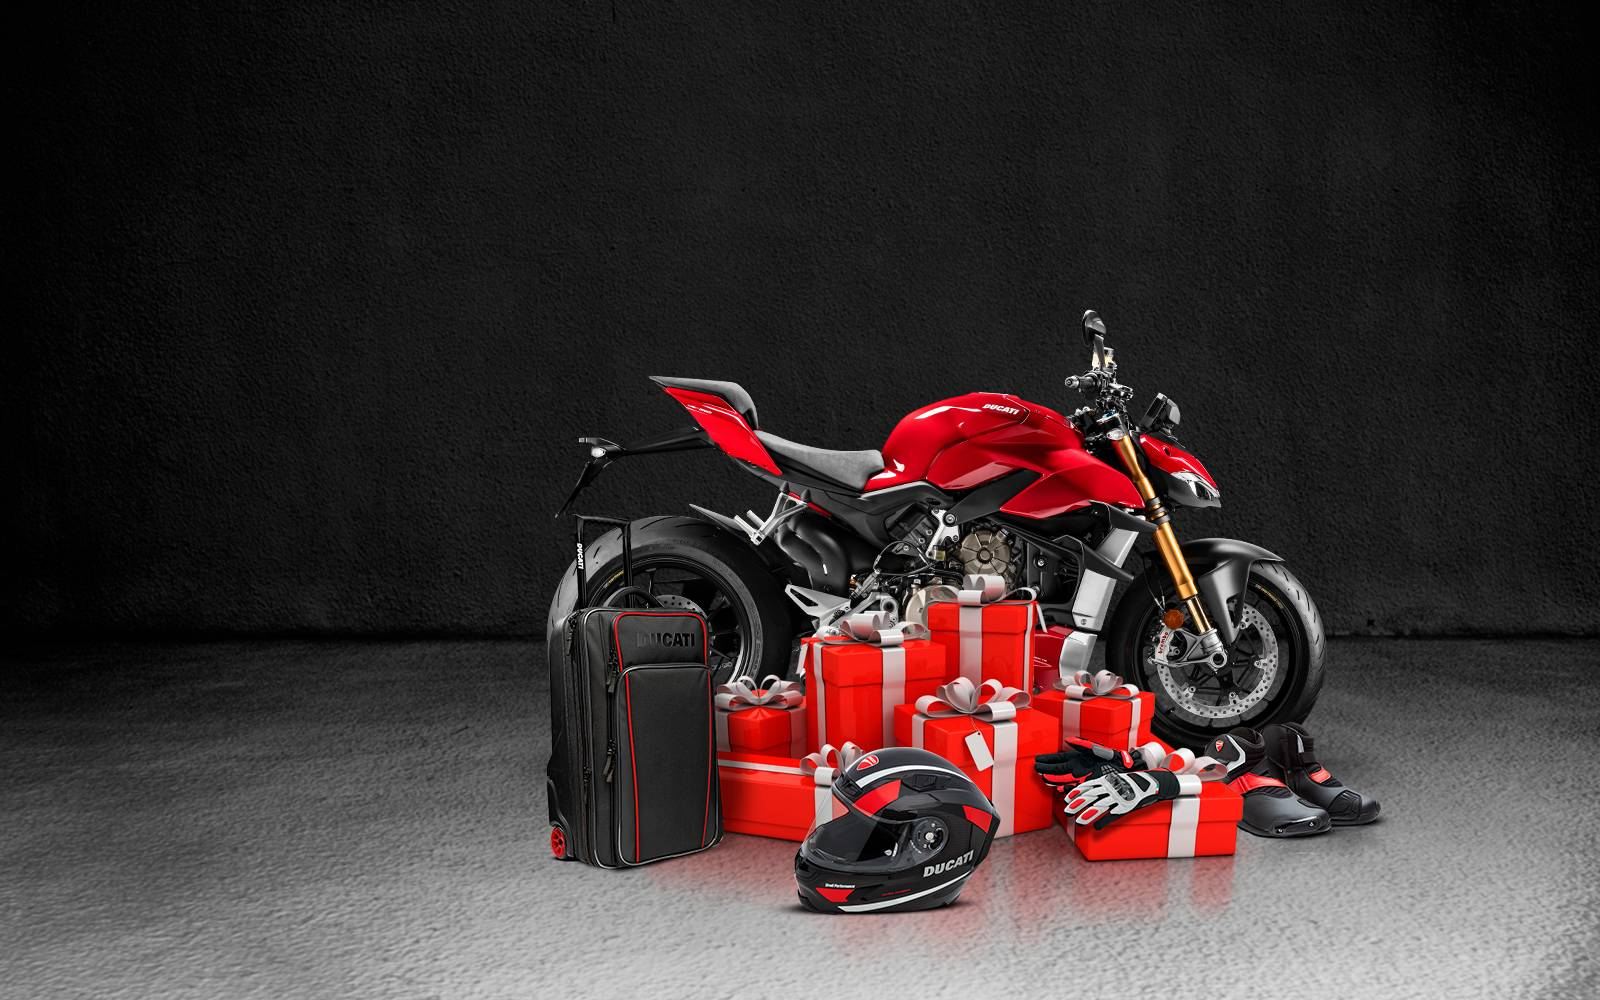 Exclusive Ducati Clothing and Accessories